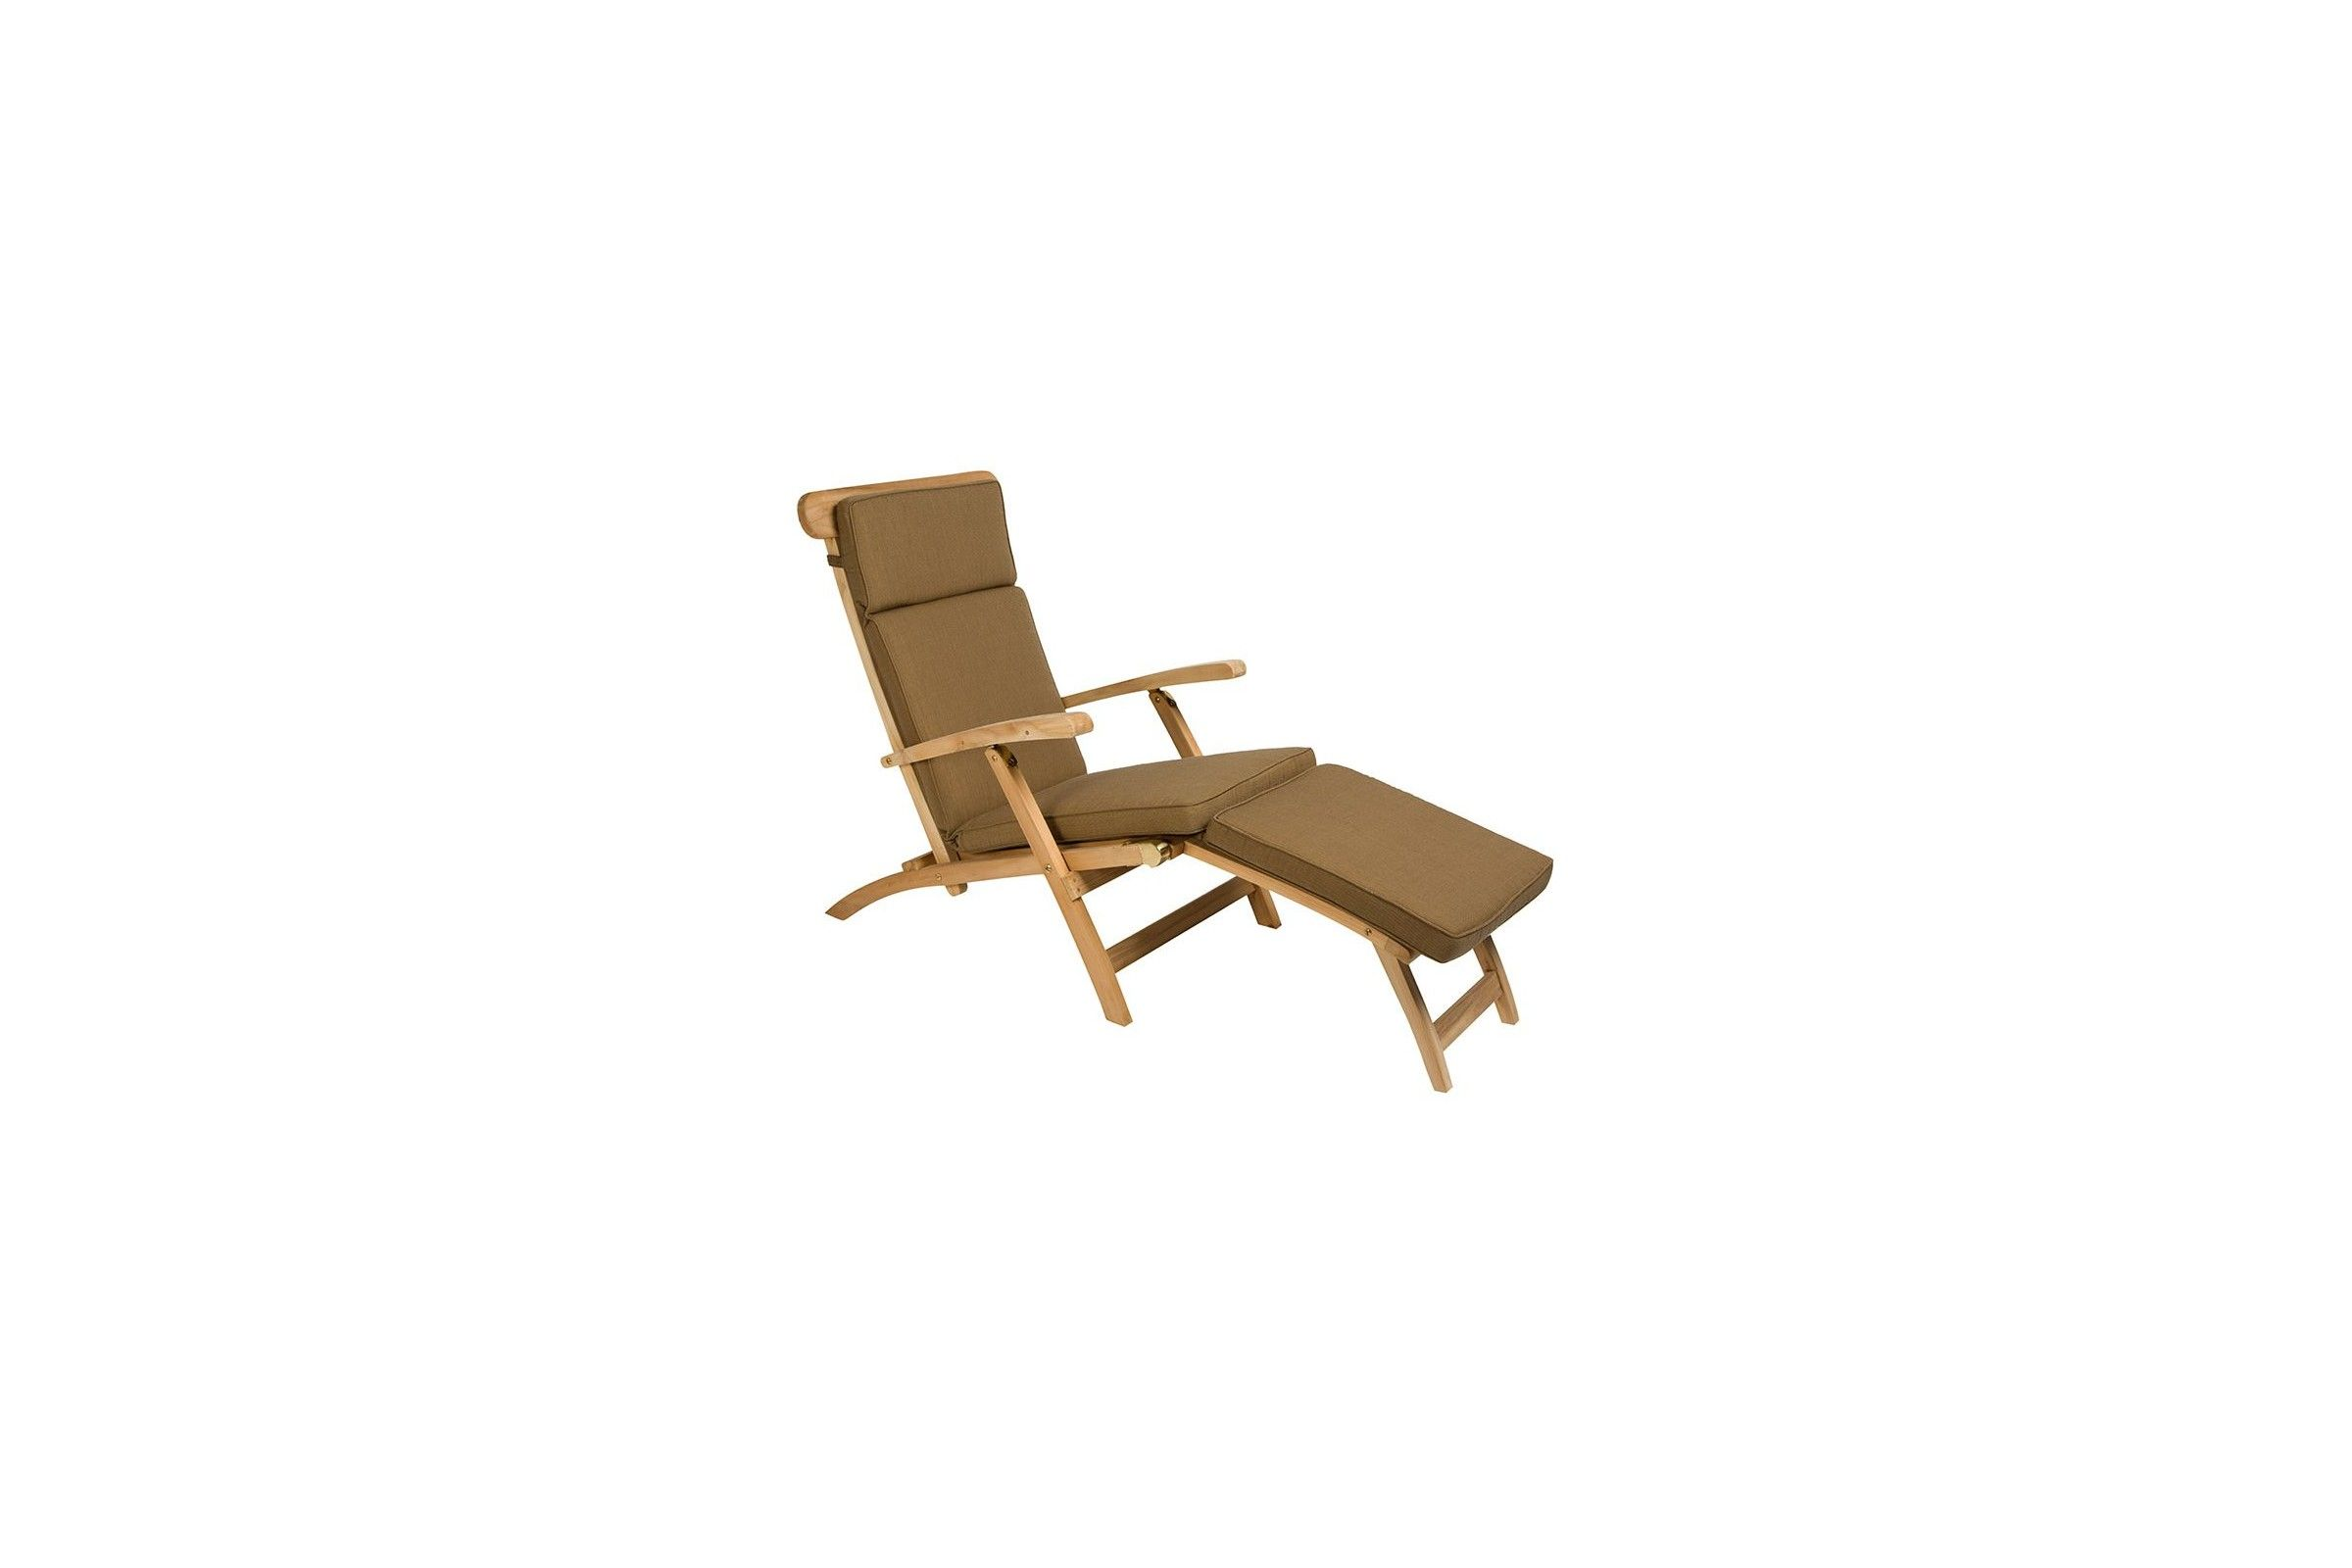 Chaise longue pliante en teck massif steamer la galerie for Chaise pliante design